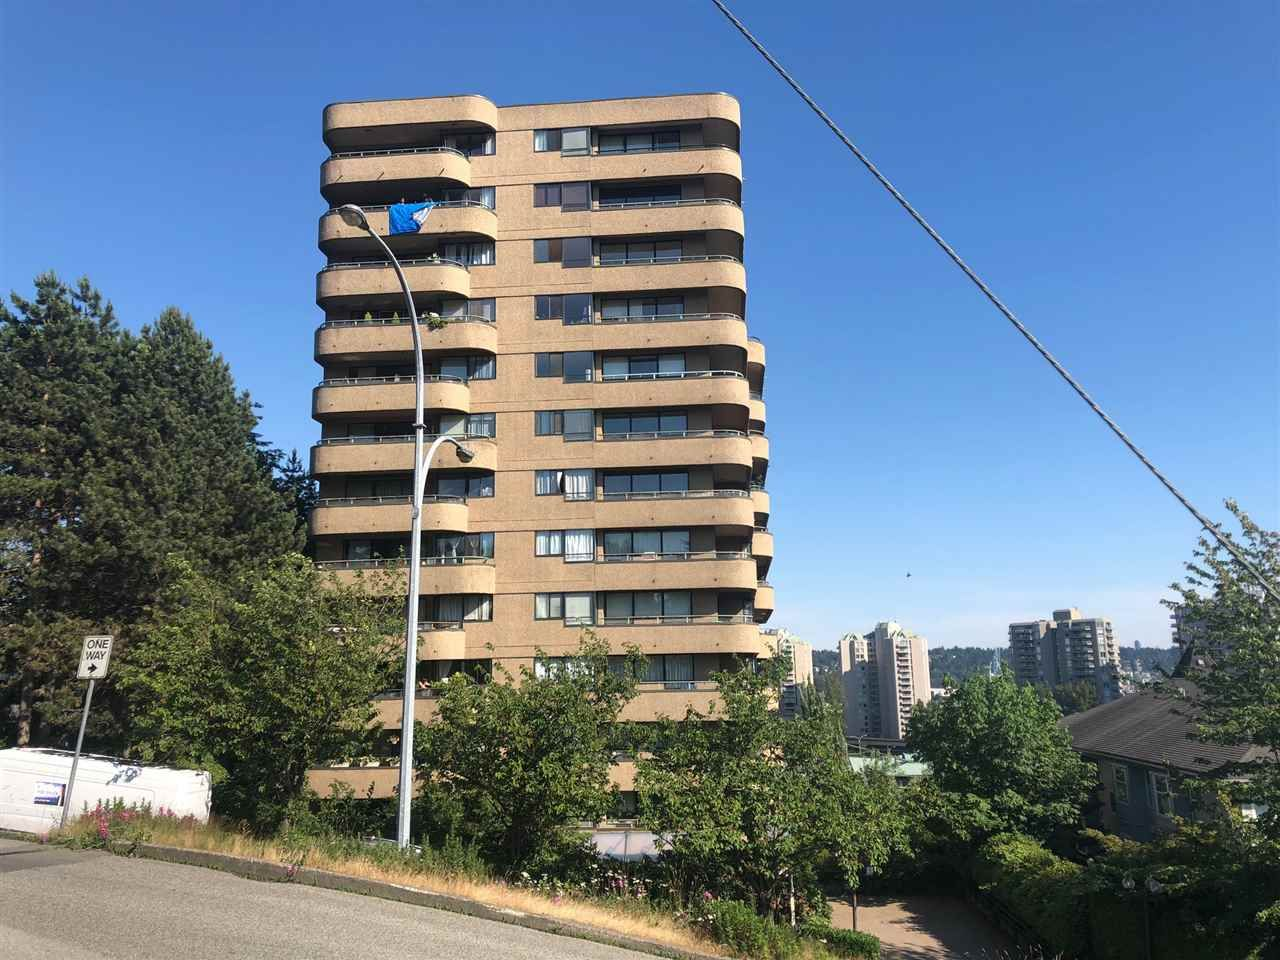 Main Photo: 1006 1026 QUEENS AVENUE in : Uptown NW Condo for sale : MLS®# R2280084